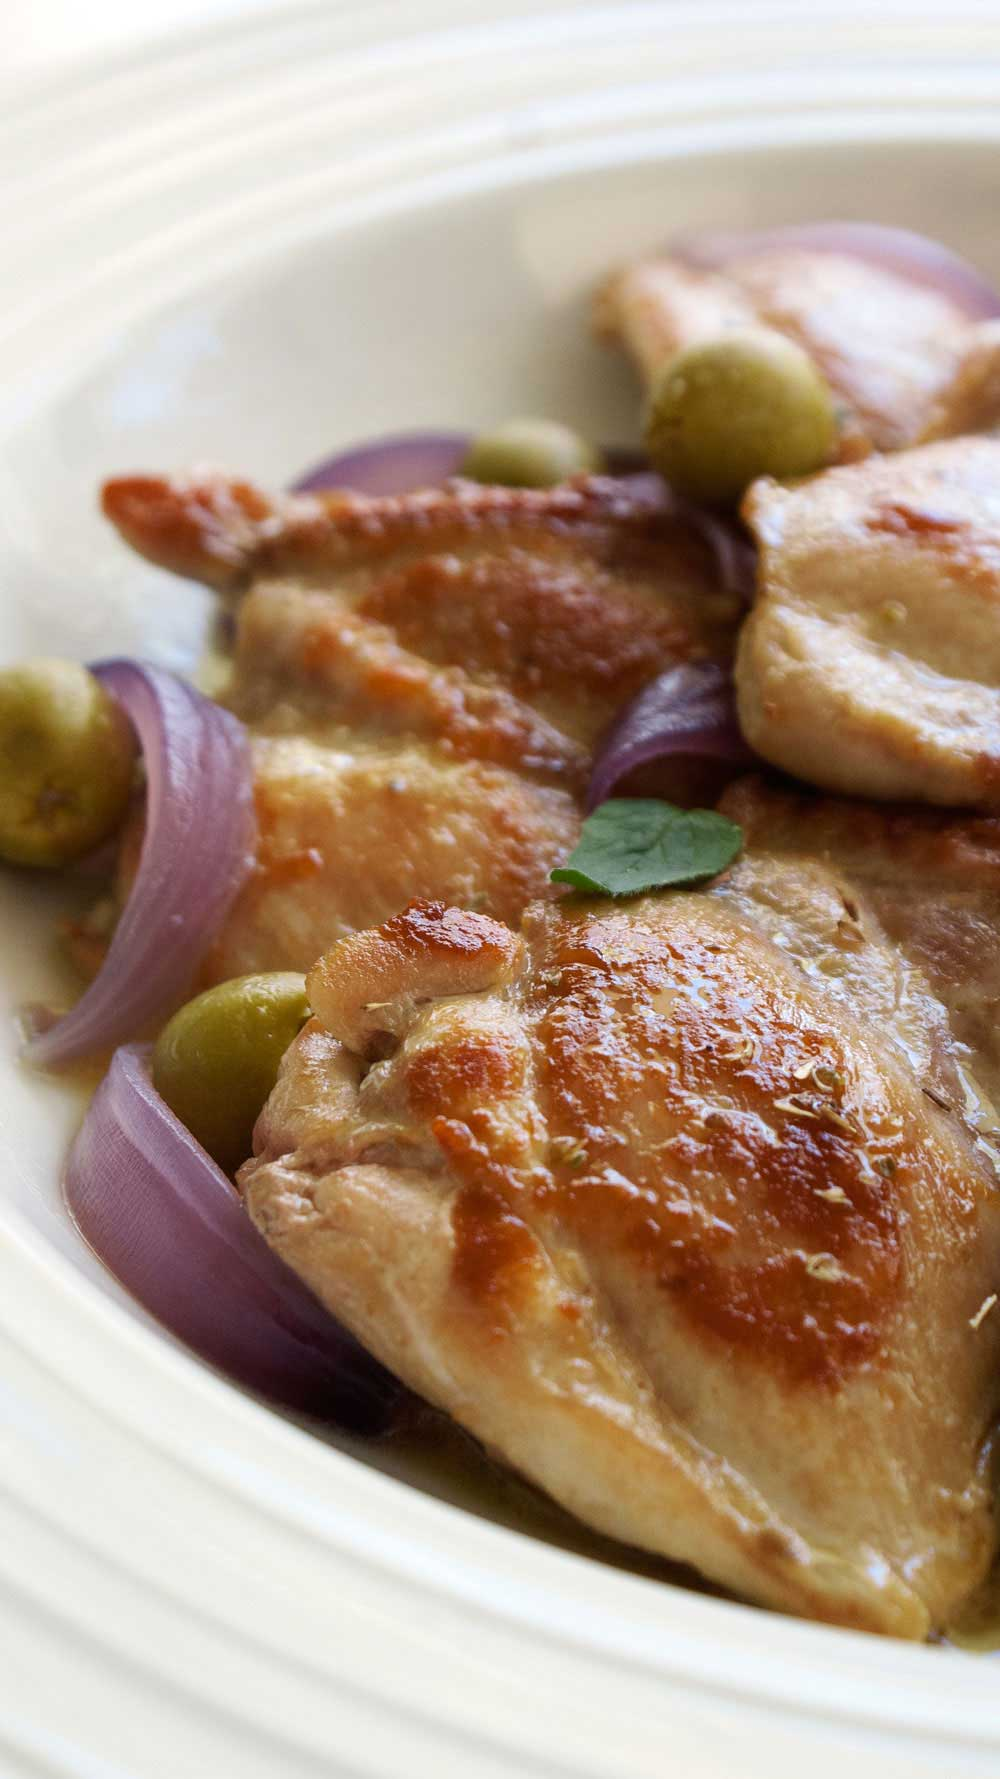 Sicilian Chicken Agrodolce. A delicious Italian sweet and sour dish. A nice light version that is perfect for Spring or Summer.